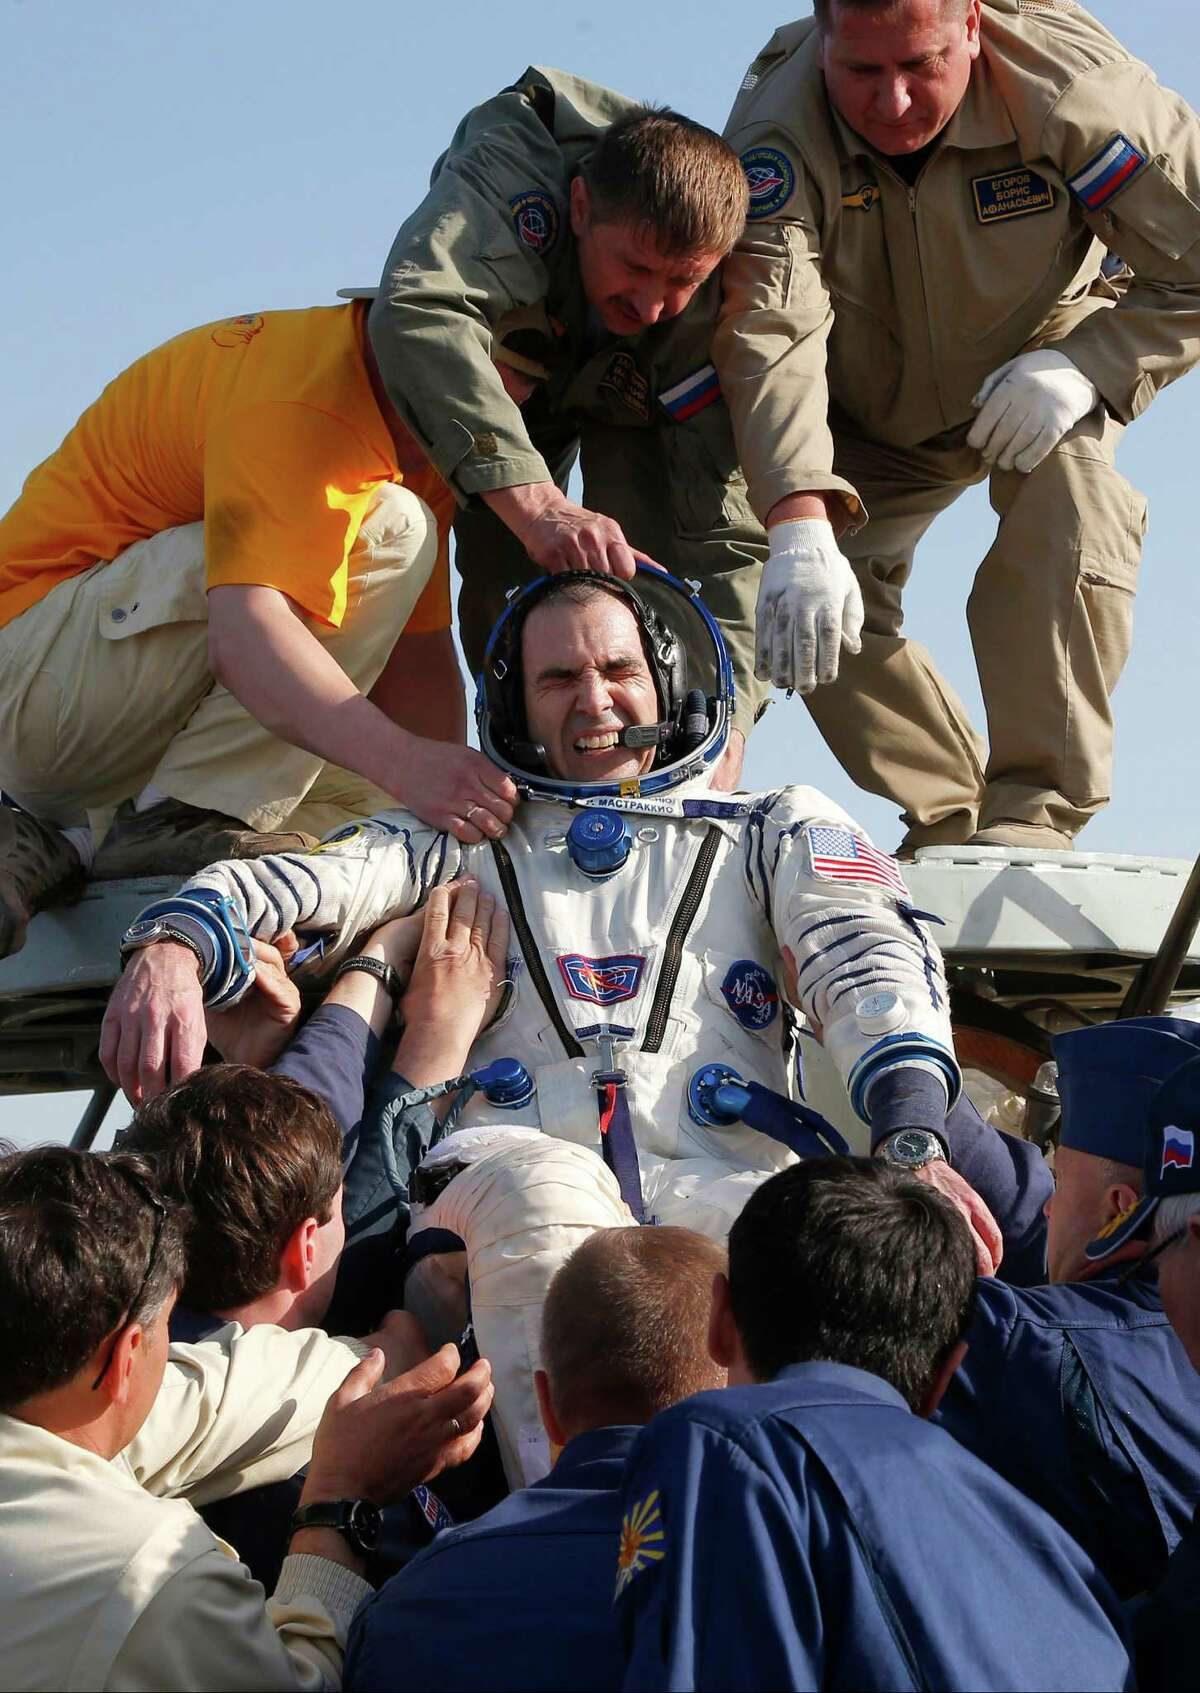 A Russian space agency rescue team helps U.S. astronaut Rick Mastracchio, a Waterbury, Conn. native, to get off the capsule of the Russian Soyuz TMA-11 module shortly after the landing, about 150 kilometers (93 miles) southeast of the Kazakh town of Dzhezkazgan, Kazakhstan, Wednesday, May 14, 2014. The Soyuz space capsule with Mastracchio, Japanese astronaut Koichi Wakata and Russian cosmonaut Mikhail Tyurin, returning from a five-month mission to the International Space Station landed safely Wednesday on the steppes of Kazakhstan. (AP Photo/Dmitry Lovetsky, pool)